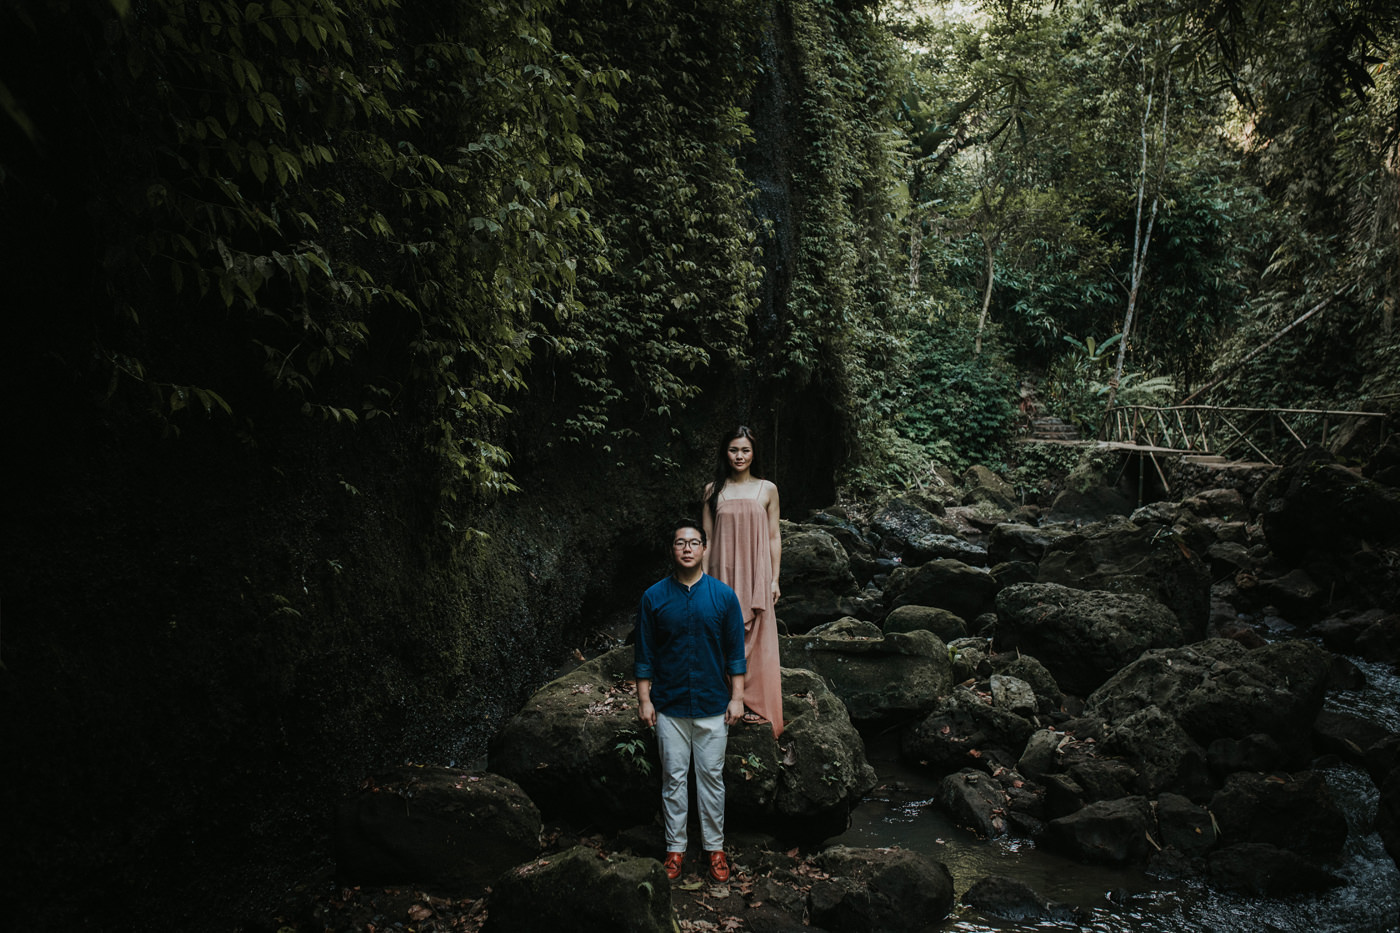 kintamani prewedding caroline ryan connection session iluminen bali wedding photographer destination photography tibumana waterfall